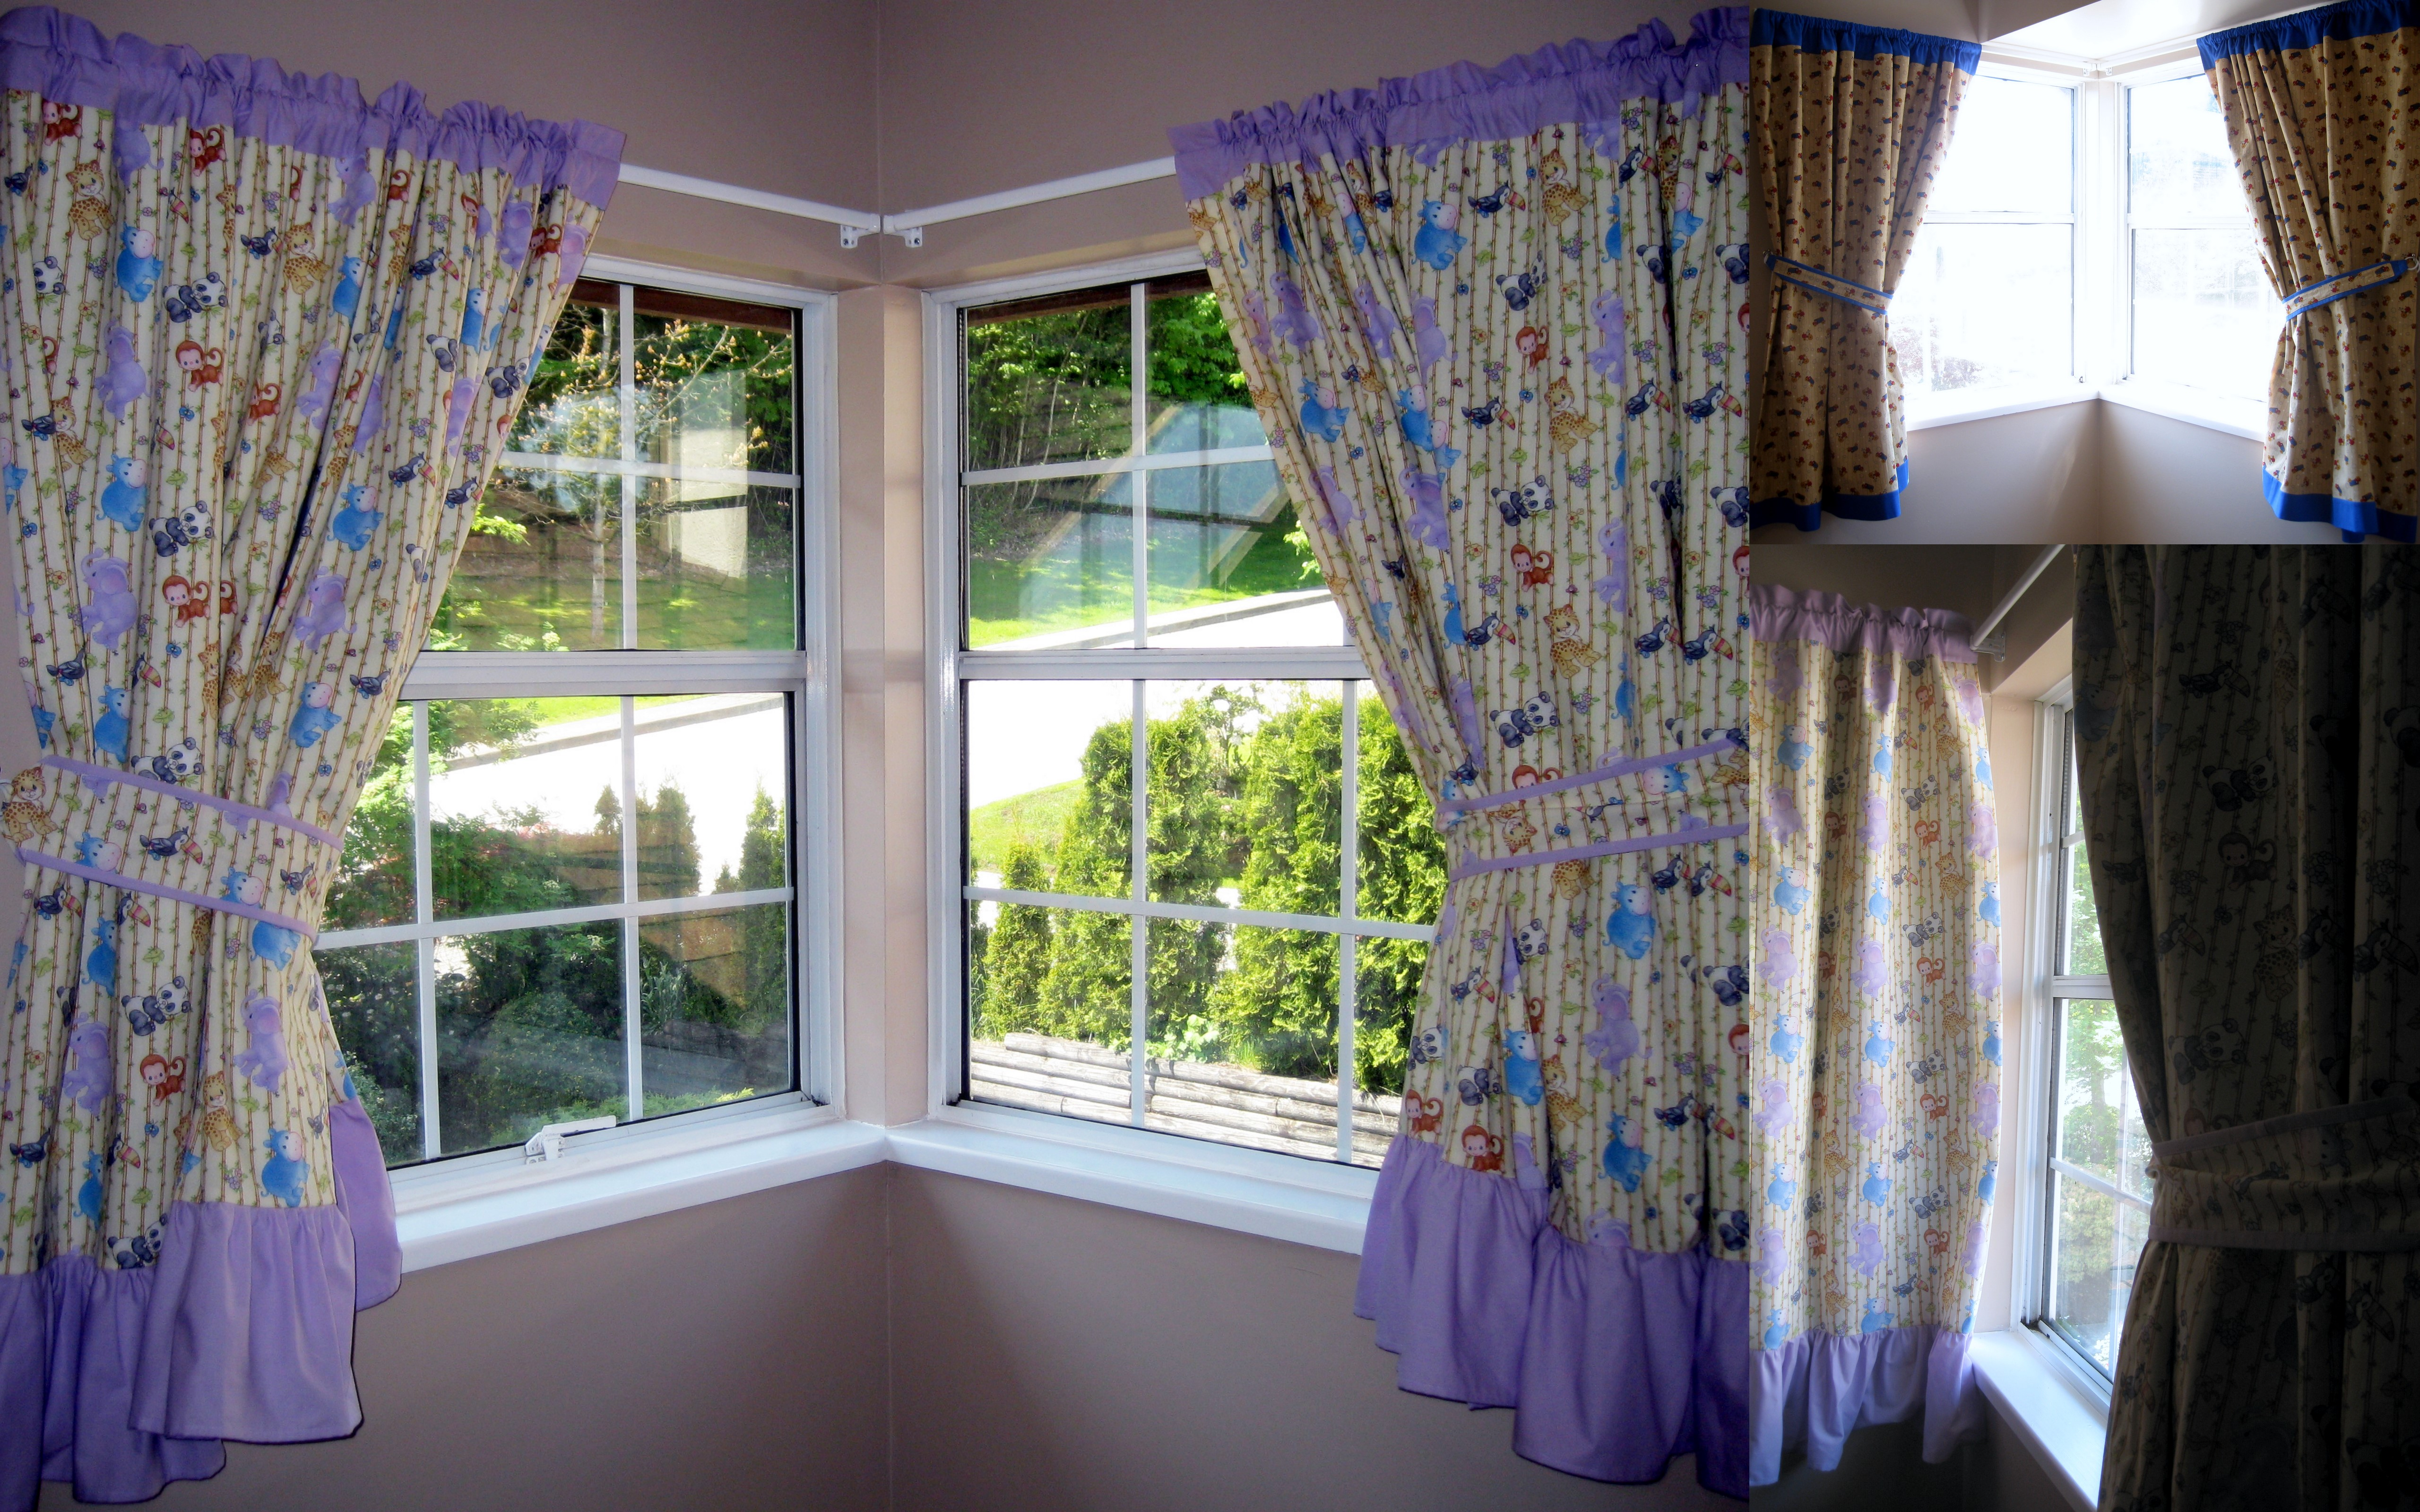 window curtain ideas    1 linen scarf valance 90 or larger for. Purple Bathroom Window Curtains Amazing Pictures   1yellowpage com